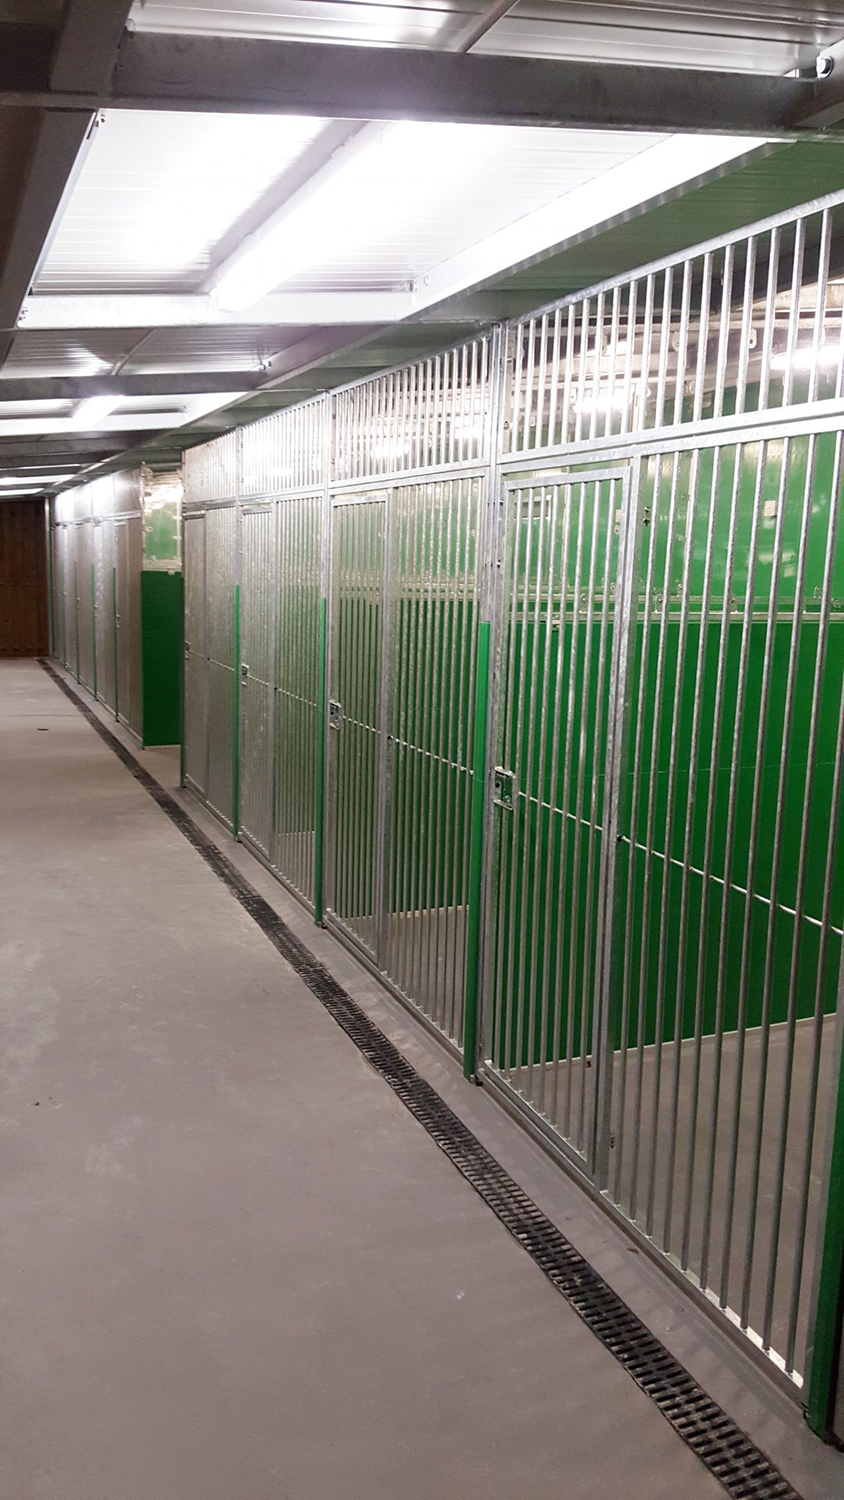 Kennelbuild provide state-of-the-art kennel unit for Askham Bryan College